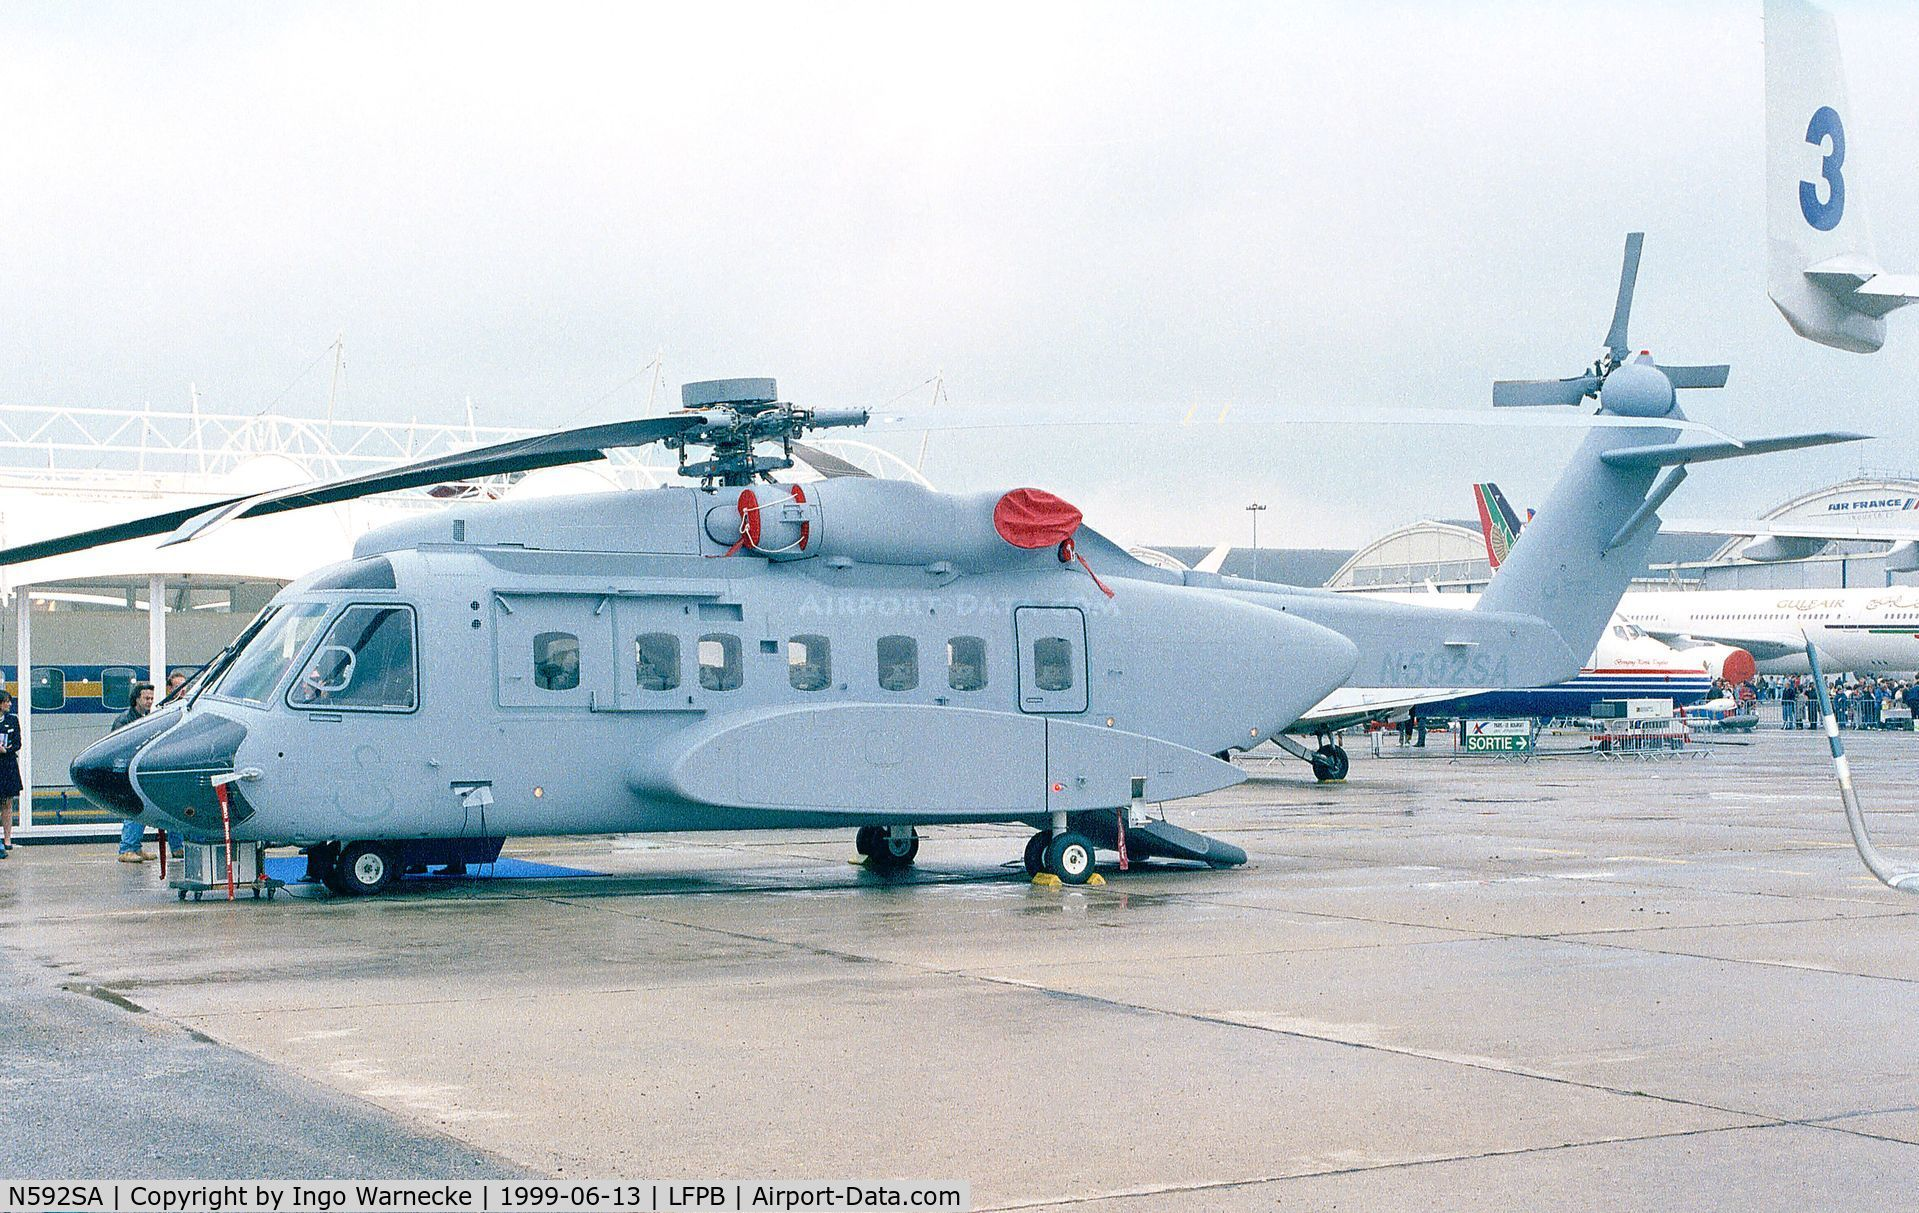 N592SA, 2001 Sikorsky S-92F C/N 92005, Sikorsky S-92F at the Aerosalon 1999, Paris